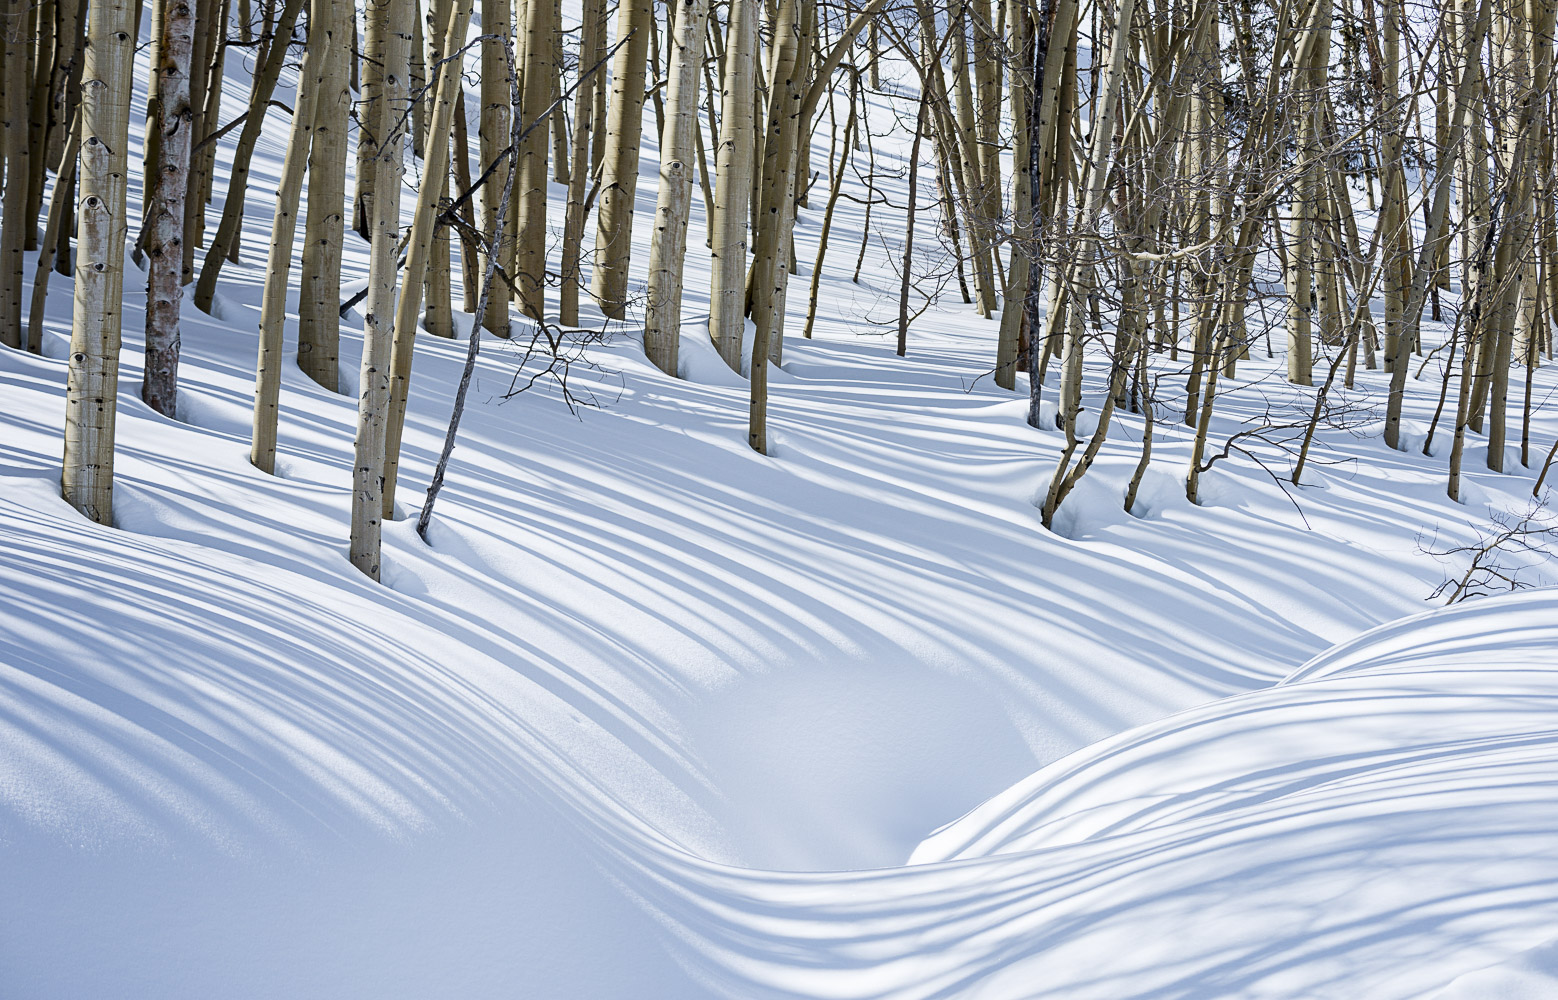 Wavy Shadows, Crested Butte, CO, 2014